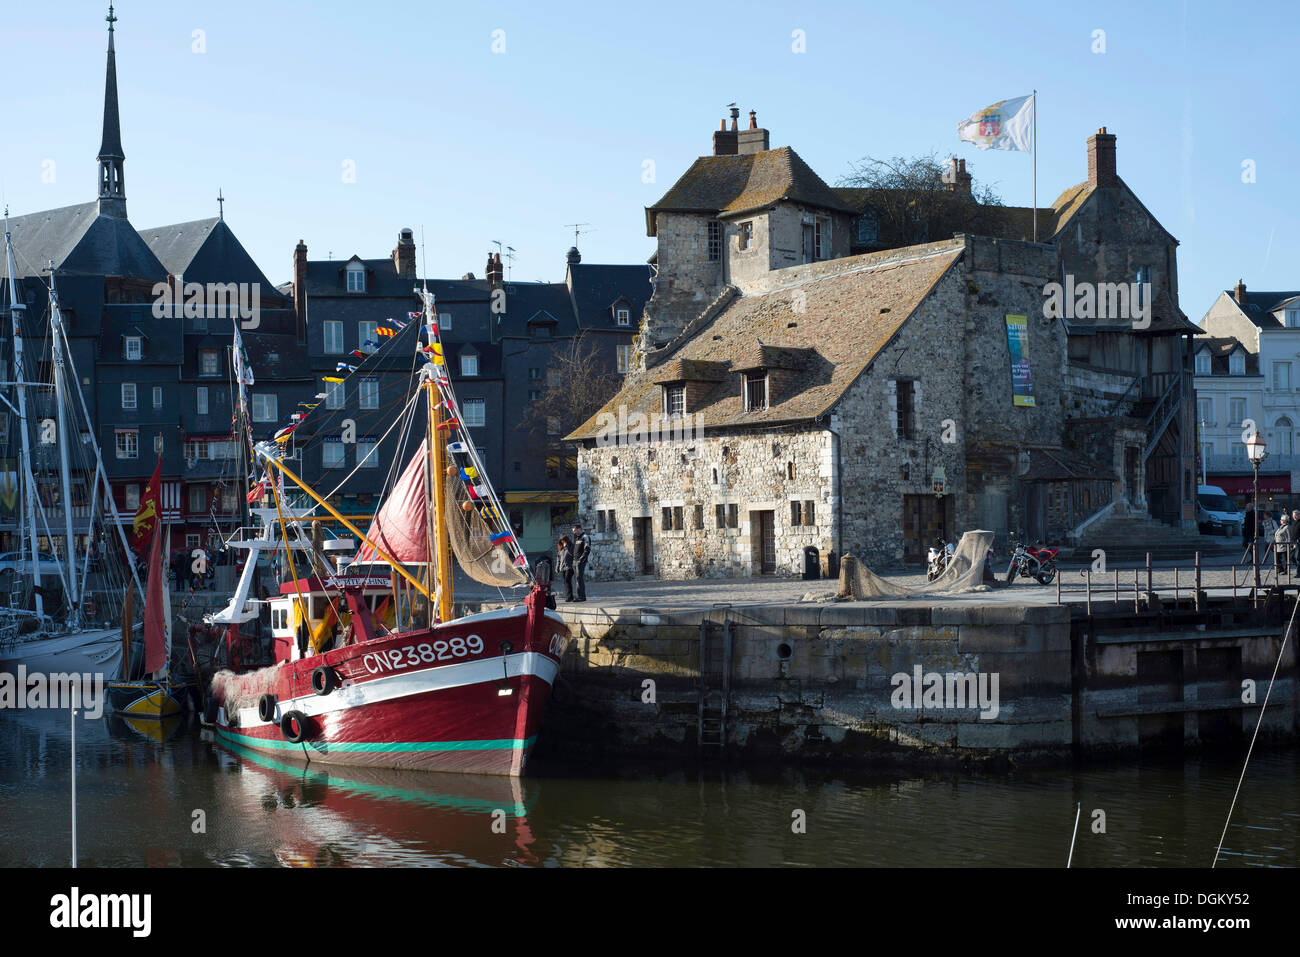 Port basin with a boat, historical city gate, Honfleur, Normandy, France, Europe - Stock Image